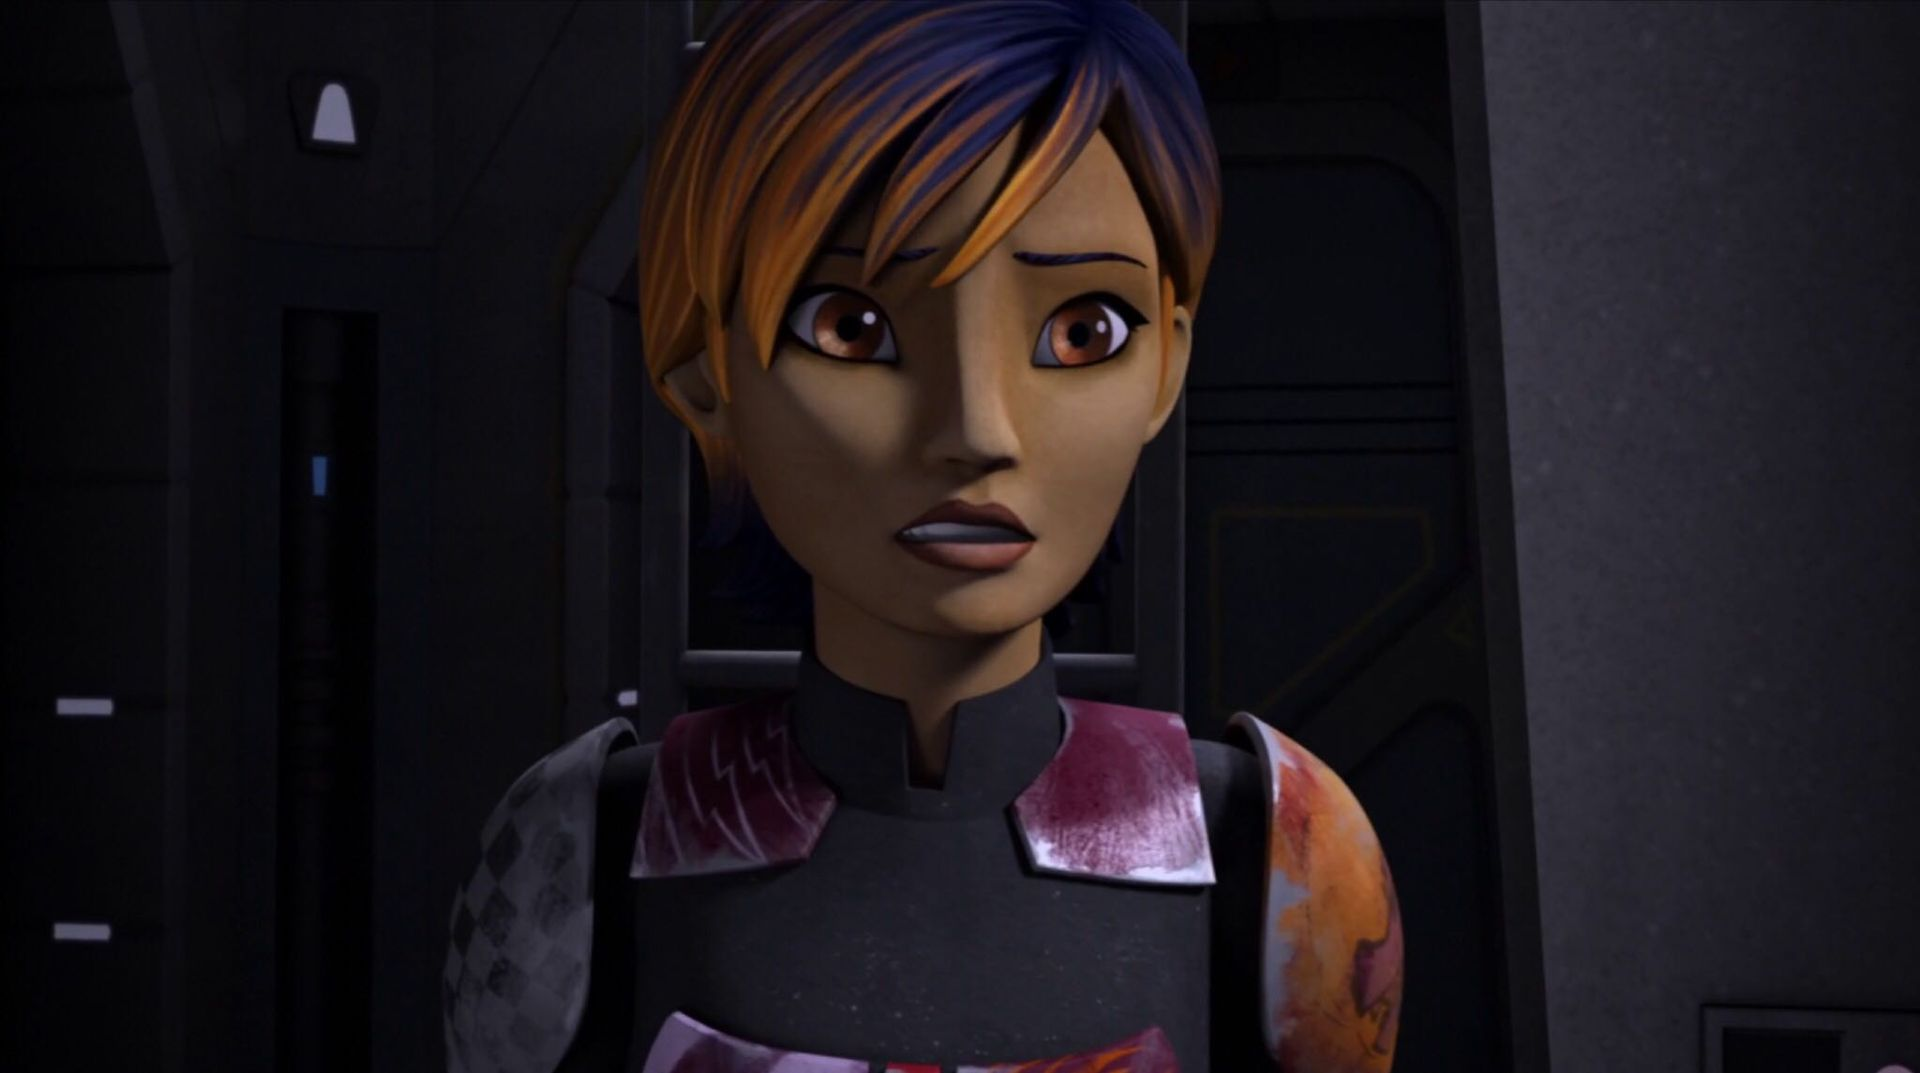 captured star wars rebels fanfic stolen wattpad